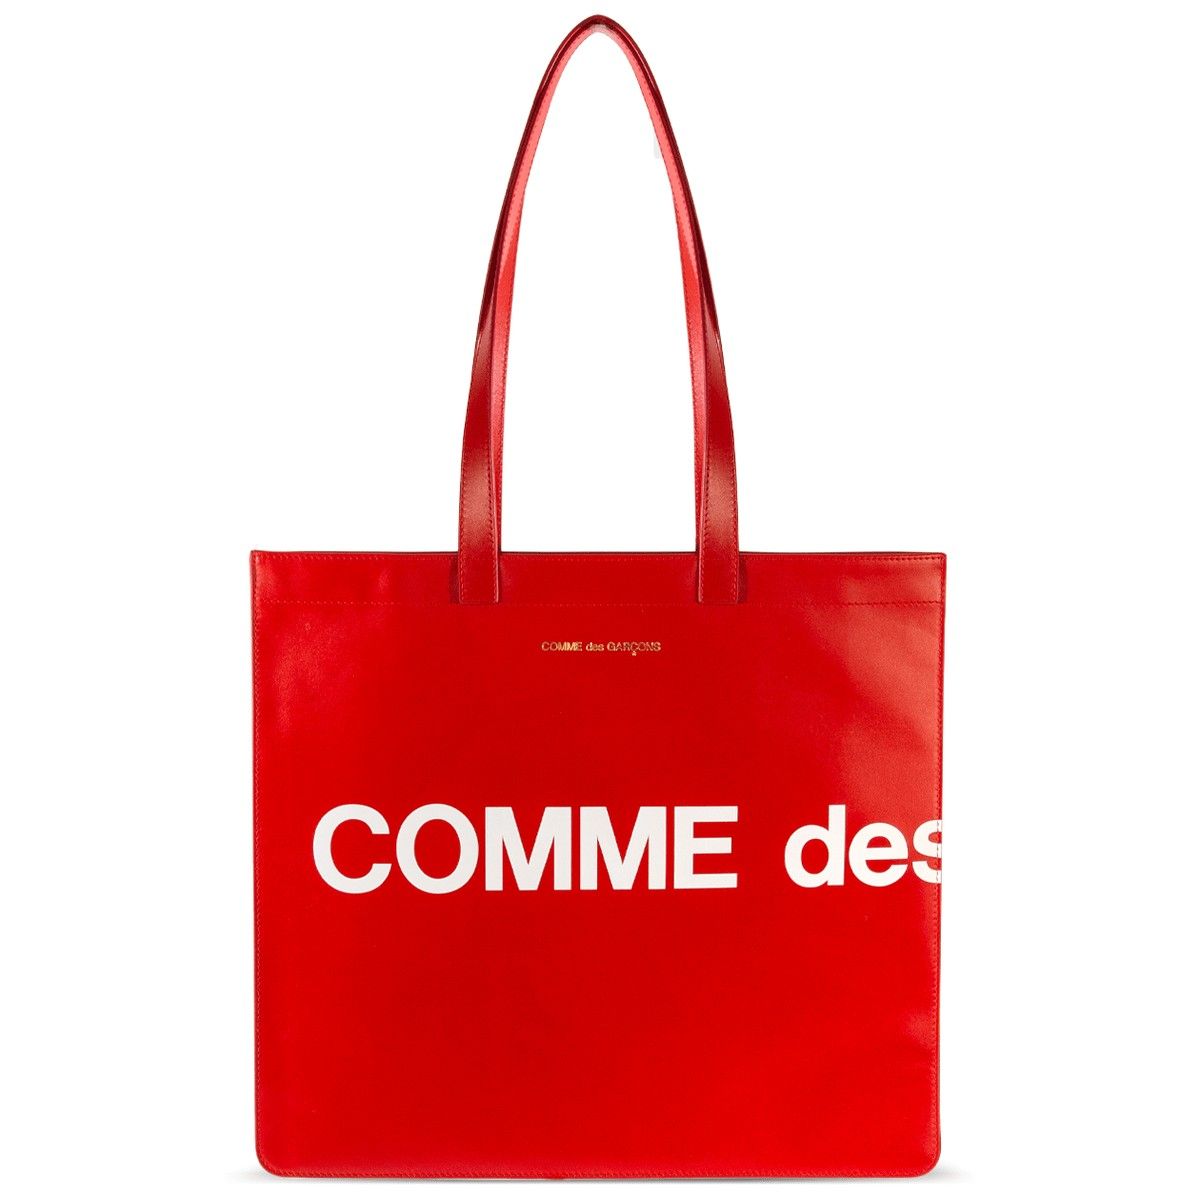 COMME DES GARÇONS WALLET - COMME DES GARÇONS WALLET HUGE LOGO LEATHER TOTE BAG RED IN RED